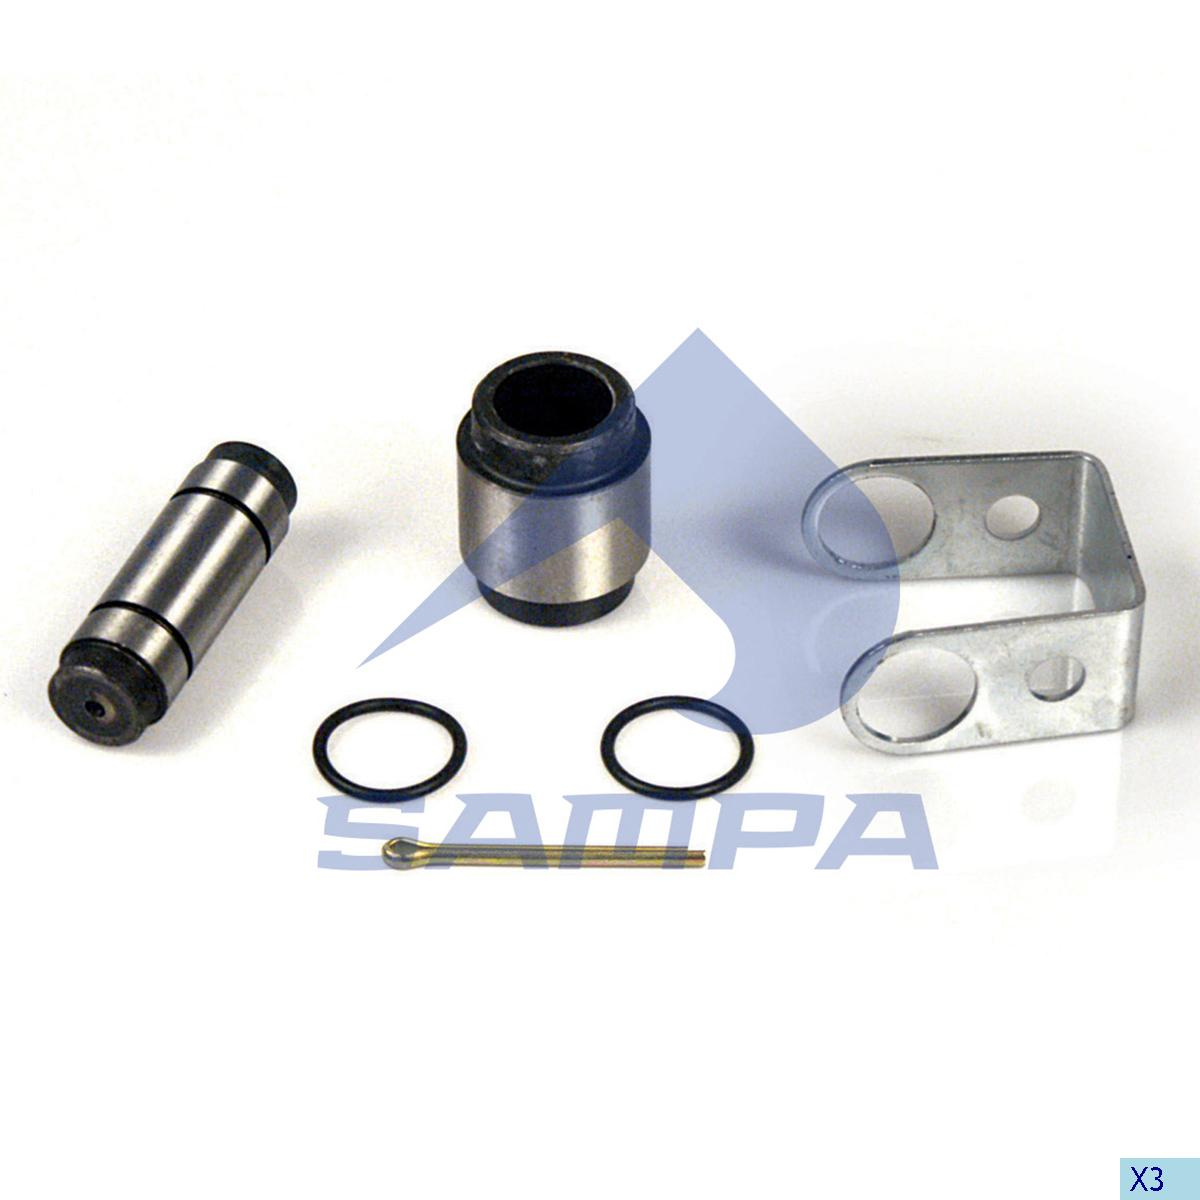 Repair Kit, Brake Shoe, Bergische Achsen, Brake